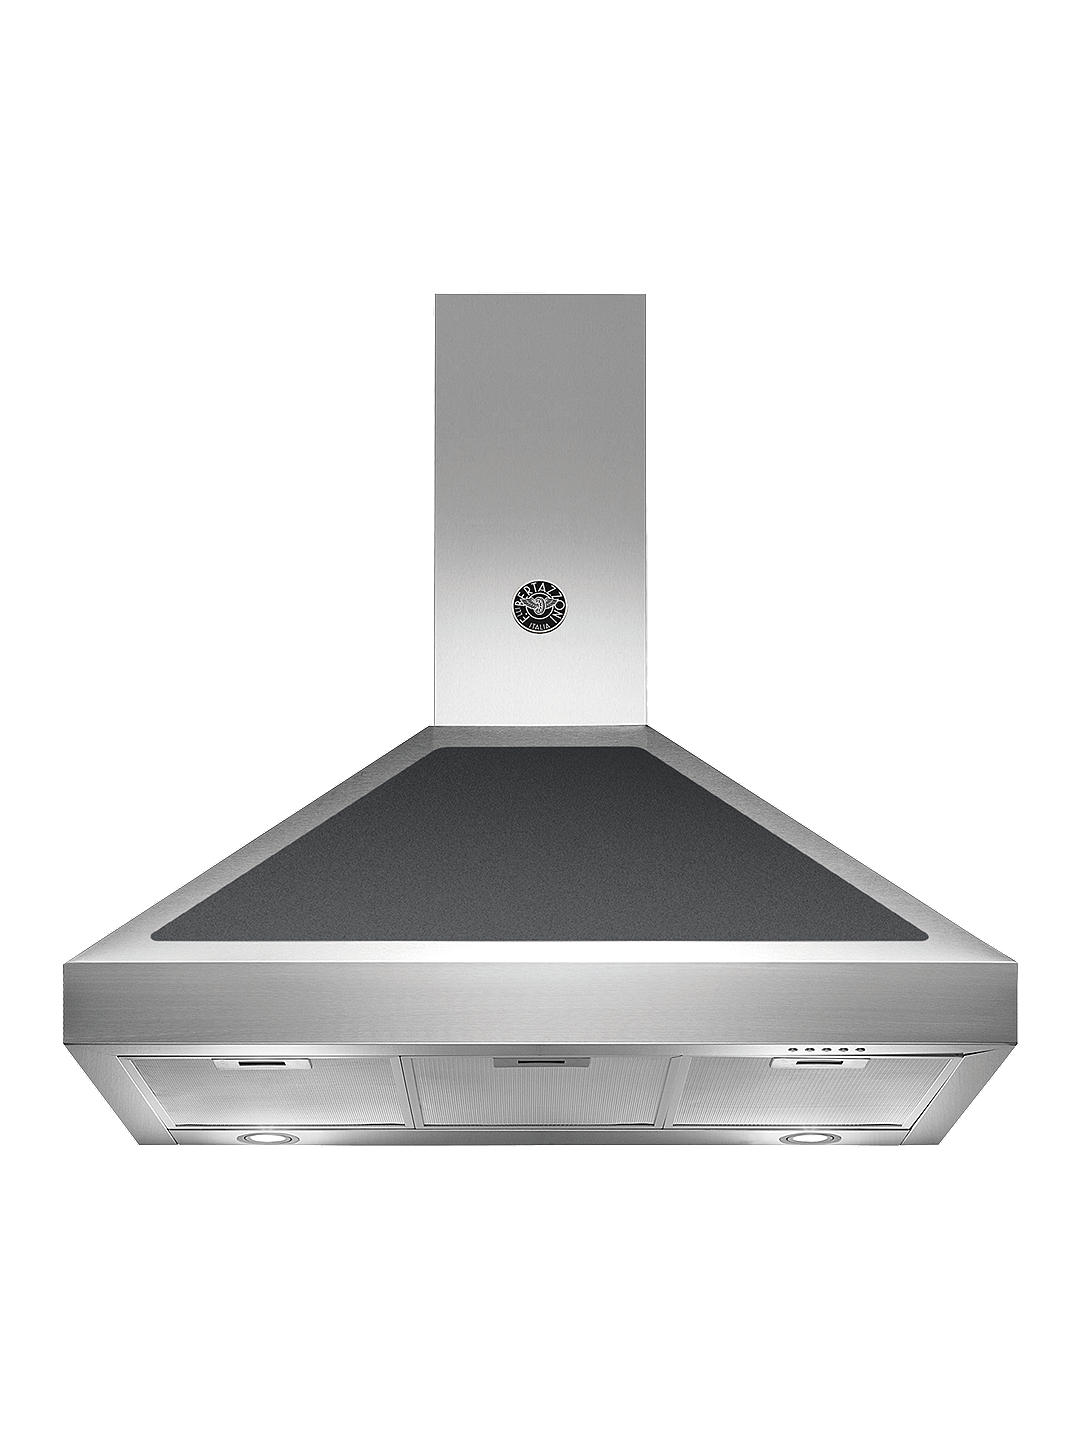 Curry cooker hood rr kabel 1.5 mm price